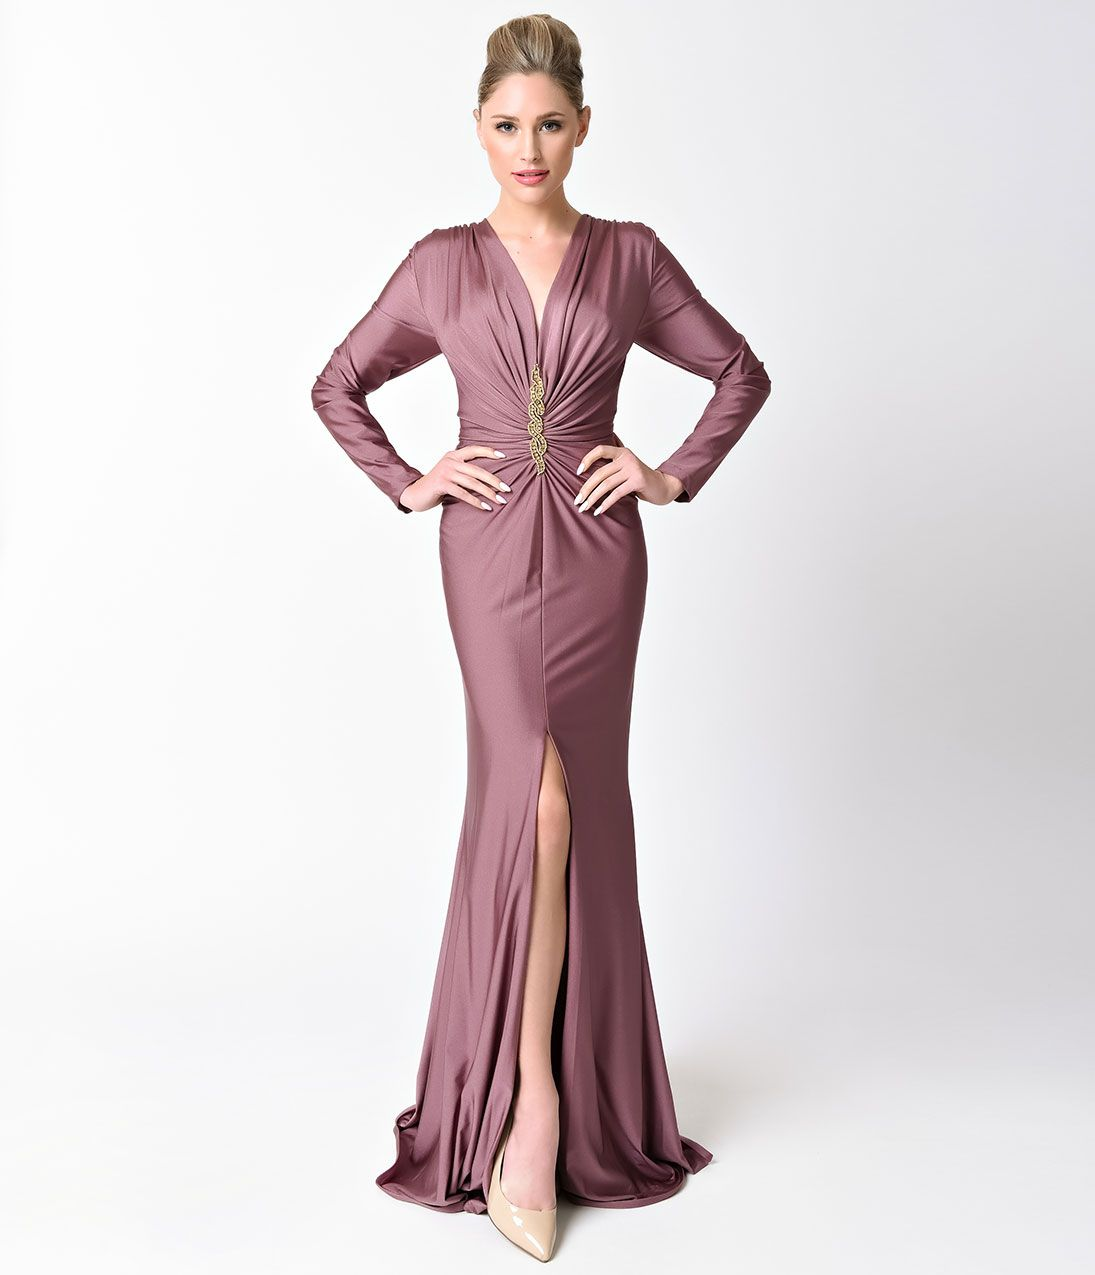 1930s Evening Dress Art Deco Gown Party Dress Purple Prom Dress Prom Dresses Long With Sleeves Prom Dresses With Sleeves [ 1275 x 1095 Pixel ]